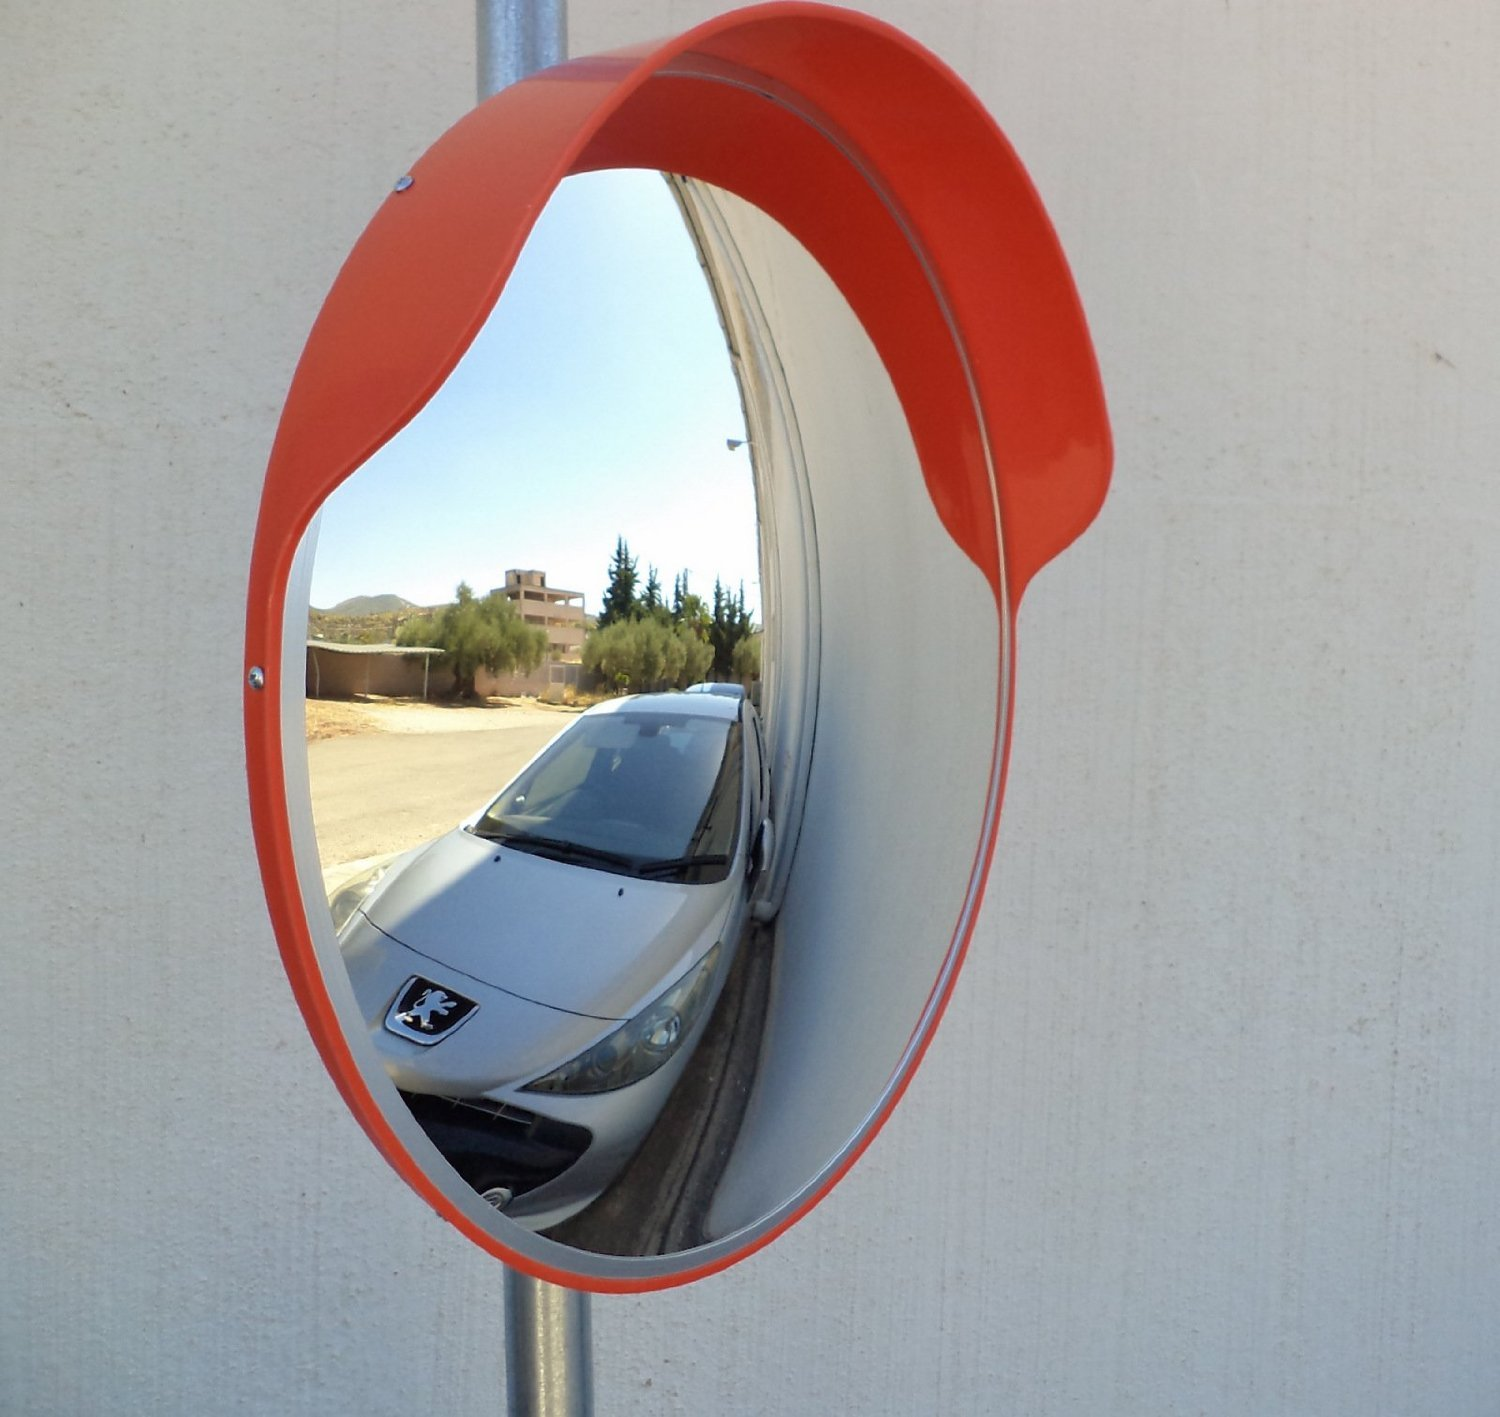 SNS SAFETY LTD SCM-60-o Safety Convex Mirror, Diameter 24'' (60cm), for Road Safety and Store Security, with Adjustable Fixing Bracket for Pole 1 1/2'' (48 mm) by SNS SAFETY LTD